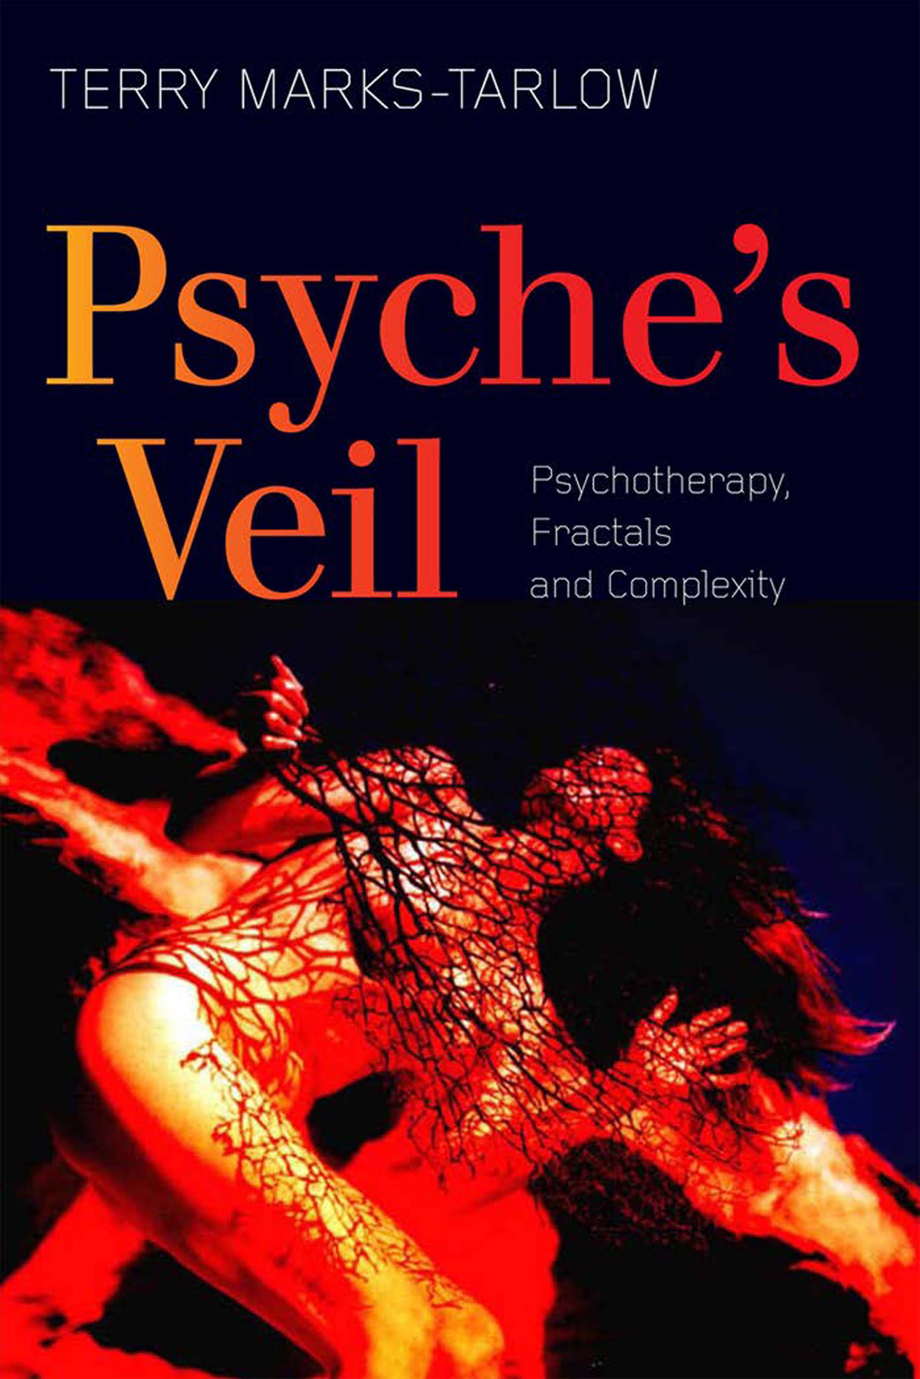 Psyche's Veil Psychotherapy,  Fractals and Complexity